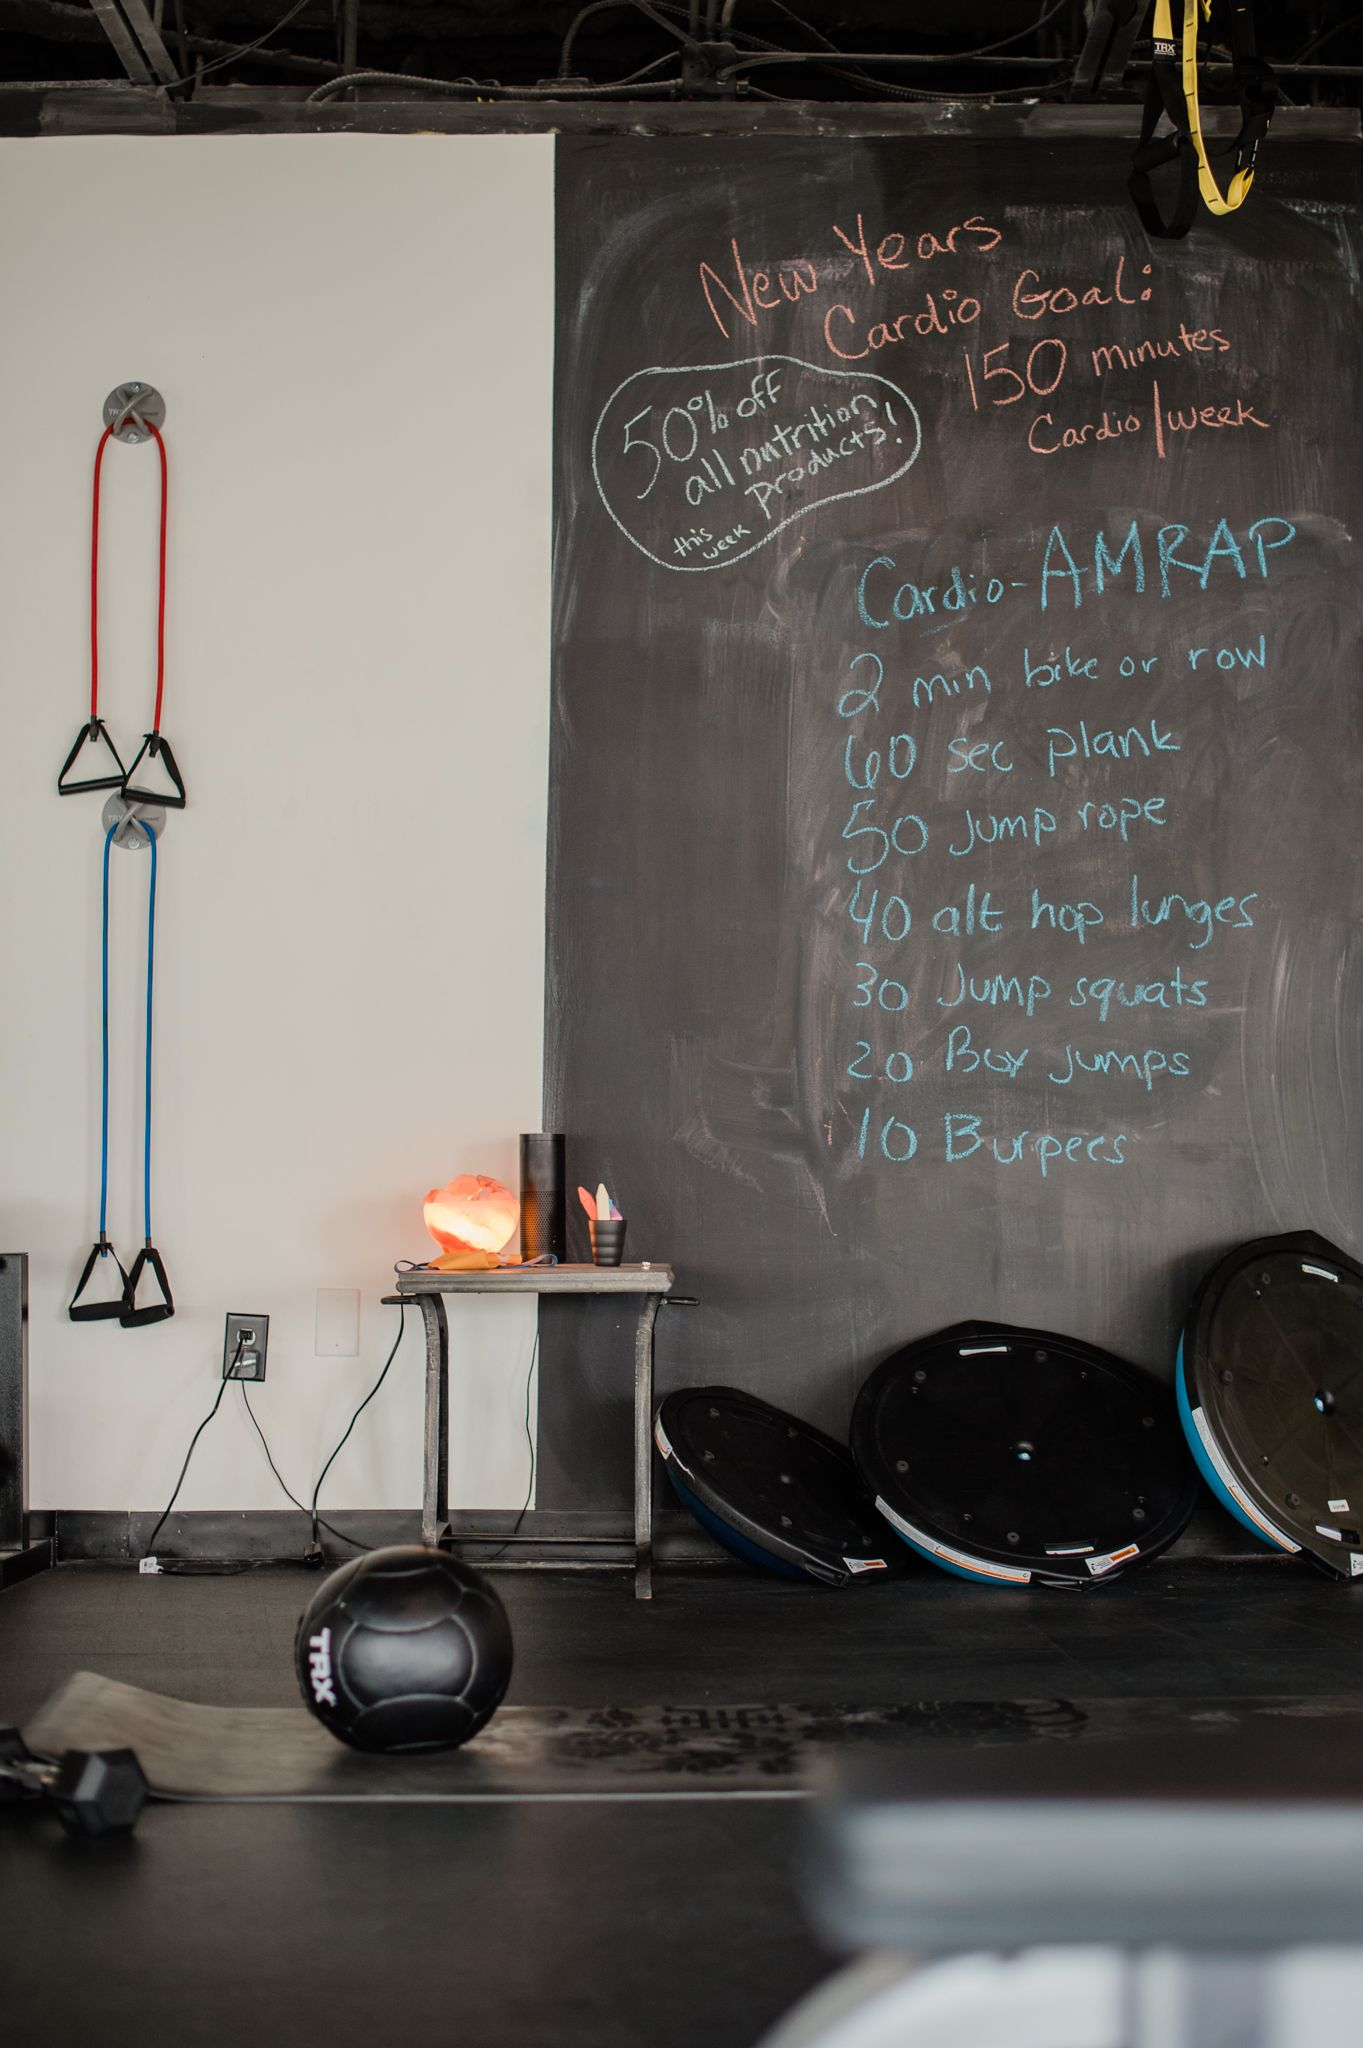 A gym with a chalkboard with exercise rep instructions written on it. Around the chalkboard are several barbell weights, a medicine ball, and other exercise equipment.